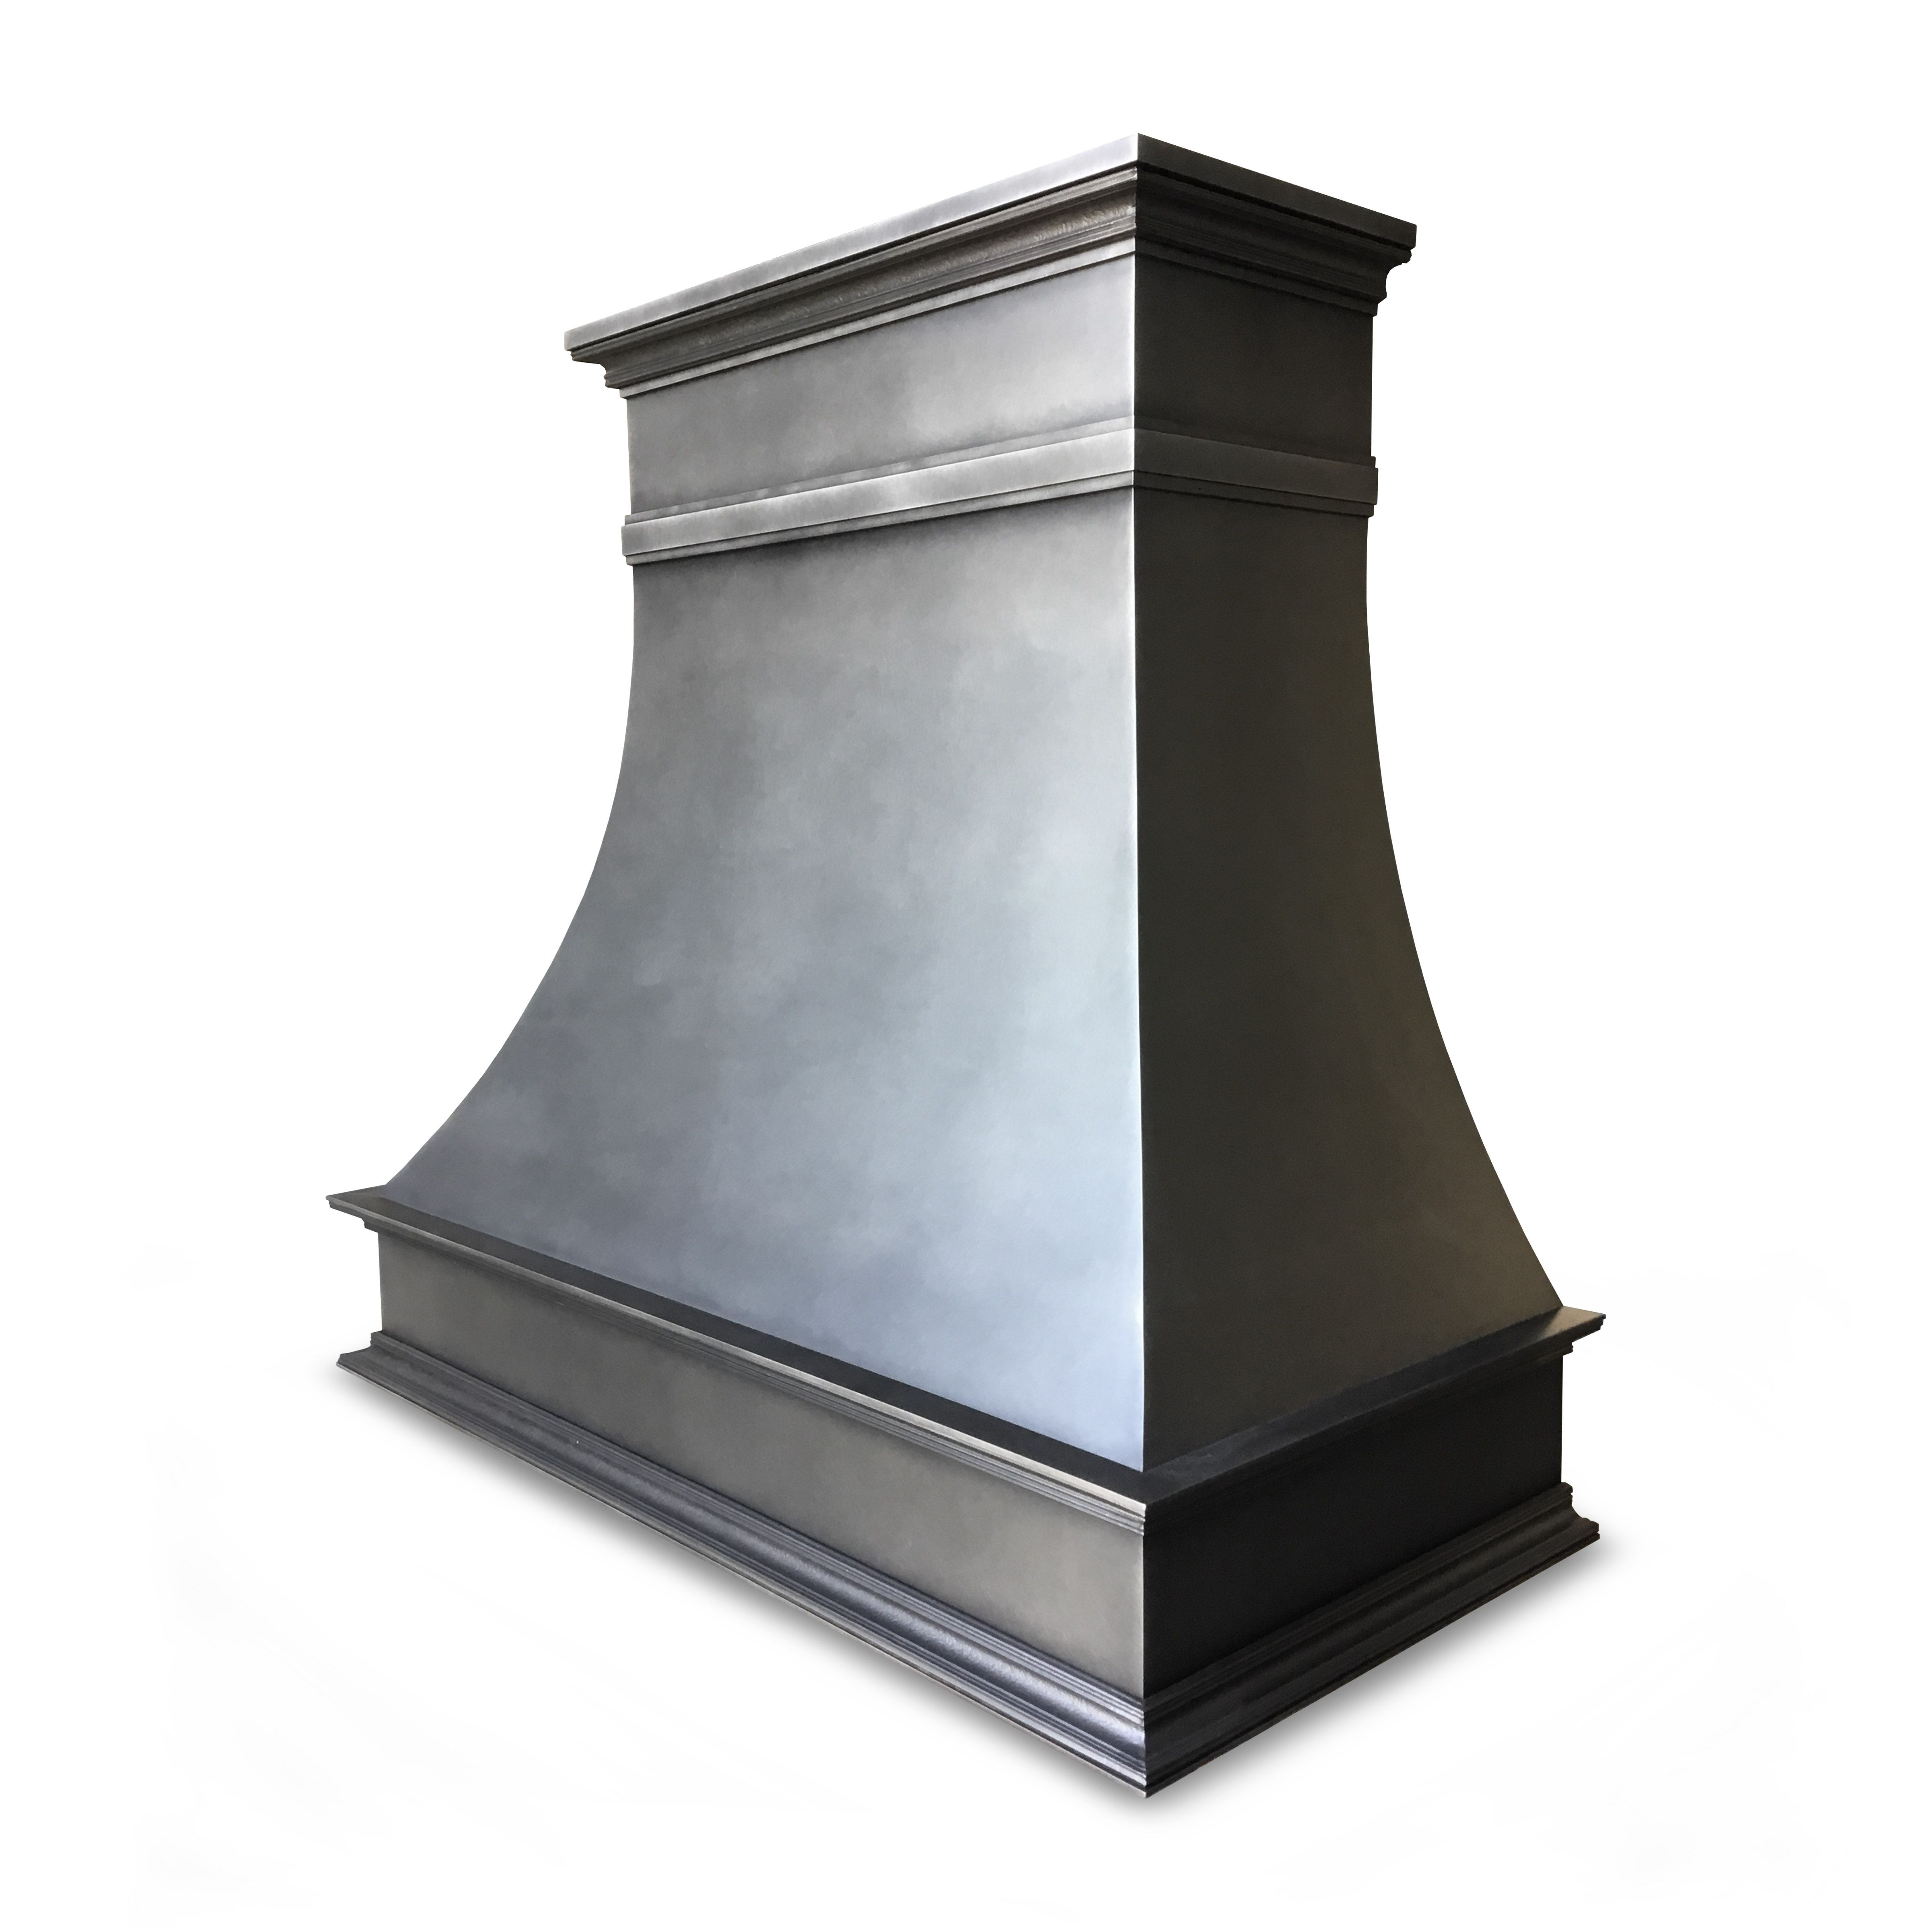 Gorgeous And Clean Custom Montrose Range Hood In Aged Antique Steel Patina By Raw Urth Designs